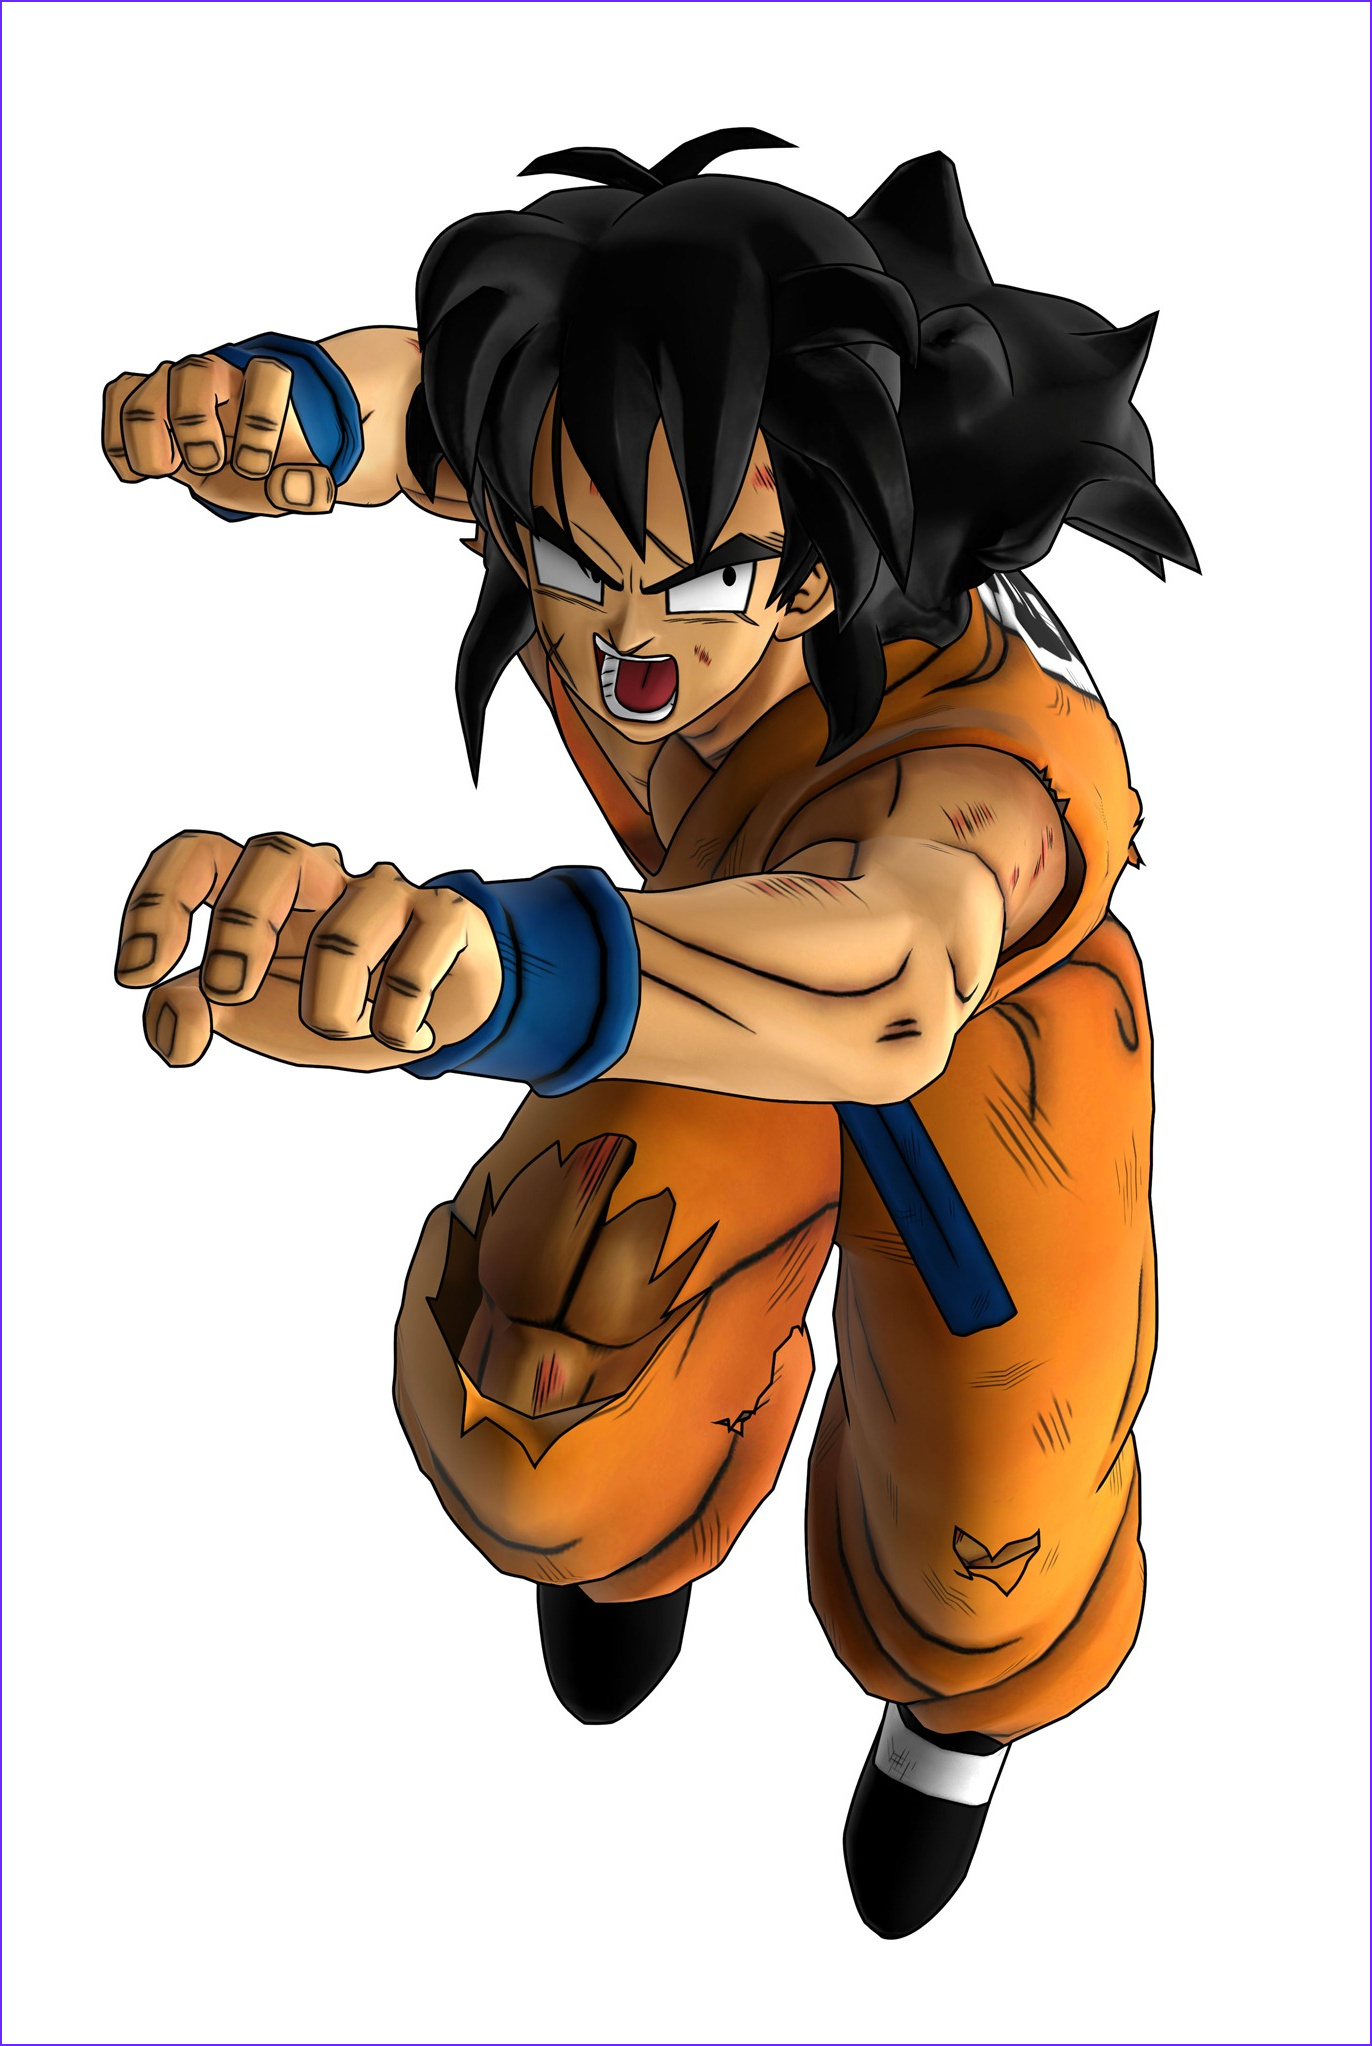 Coloring Dragonballz Luxury Collection Yamcha Dragon Ball Fighterz